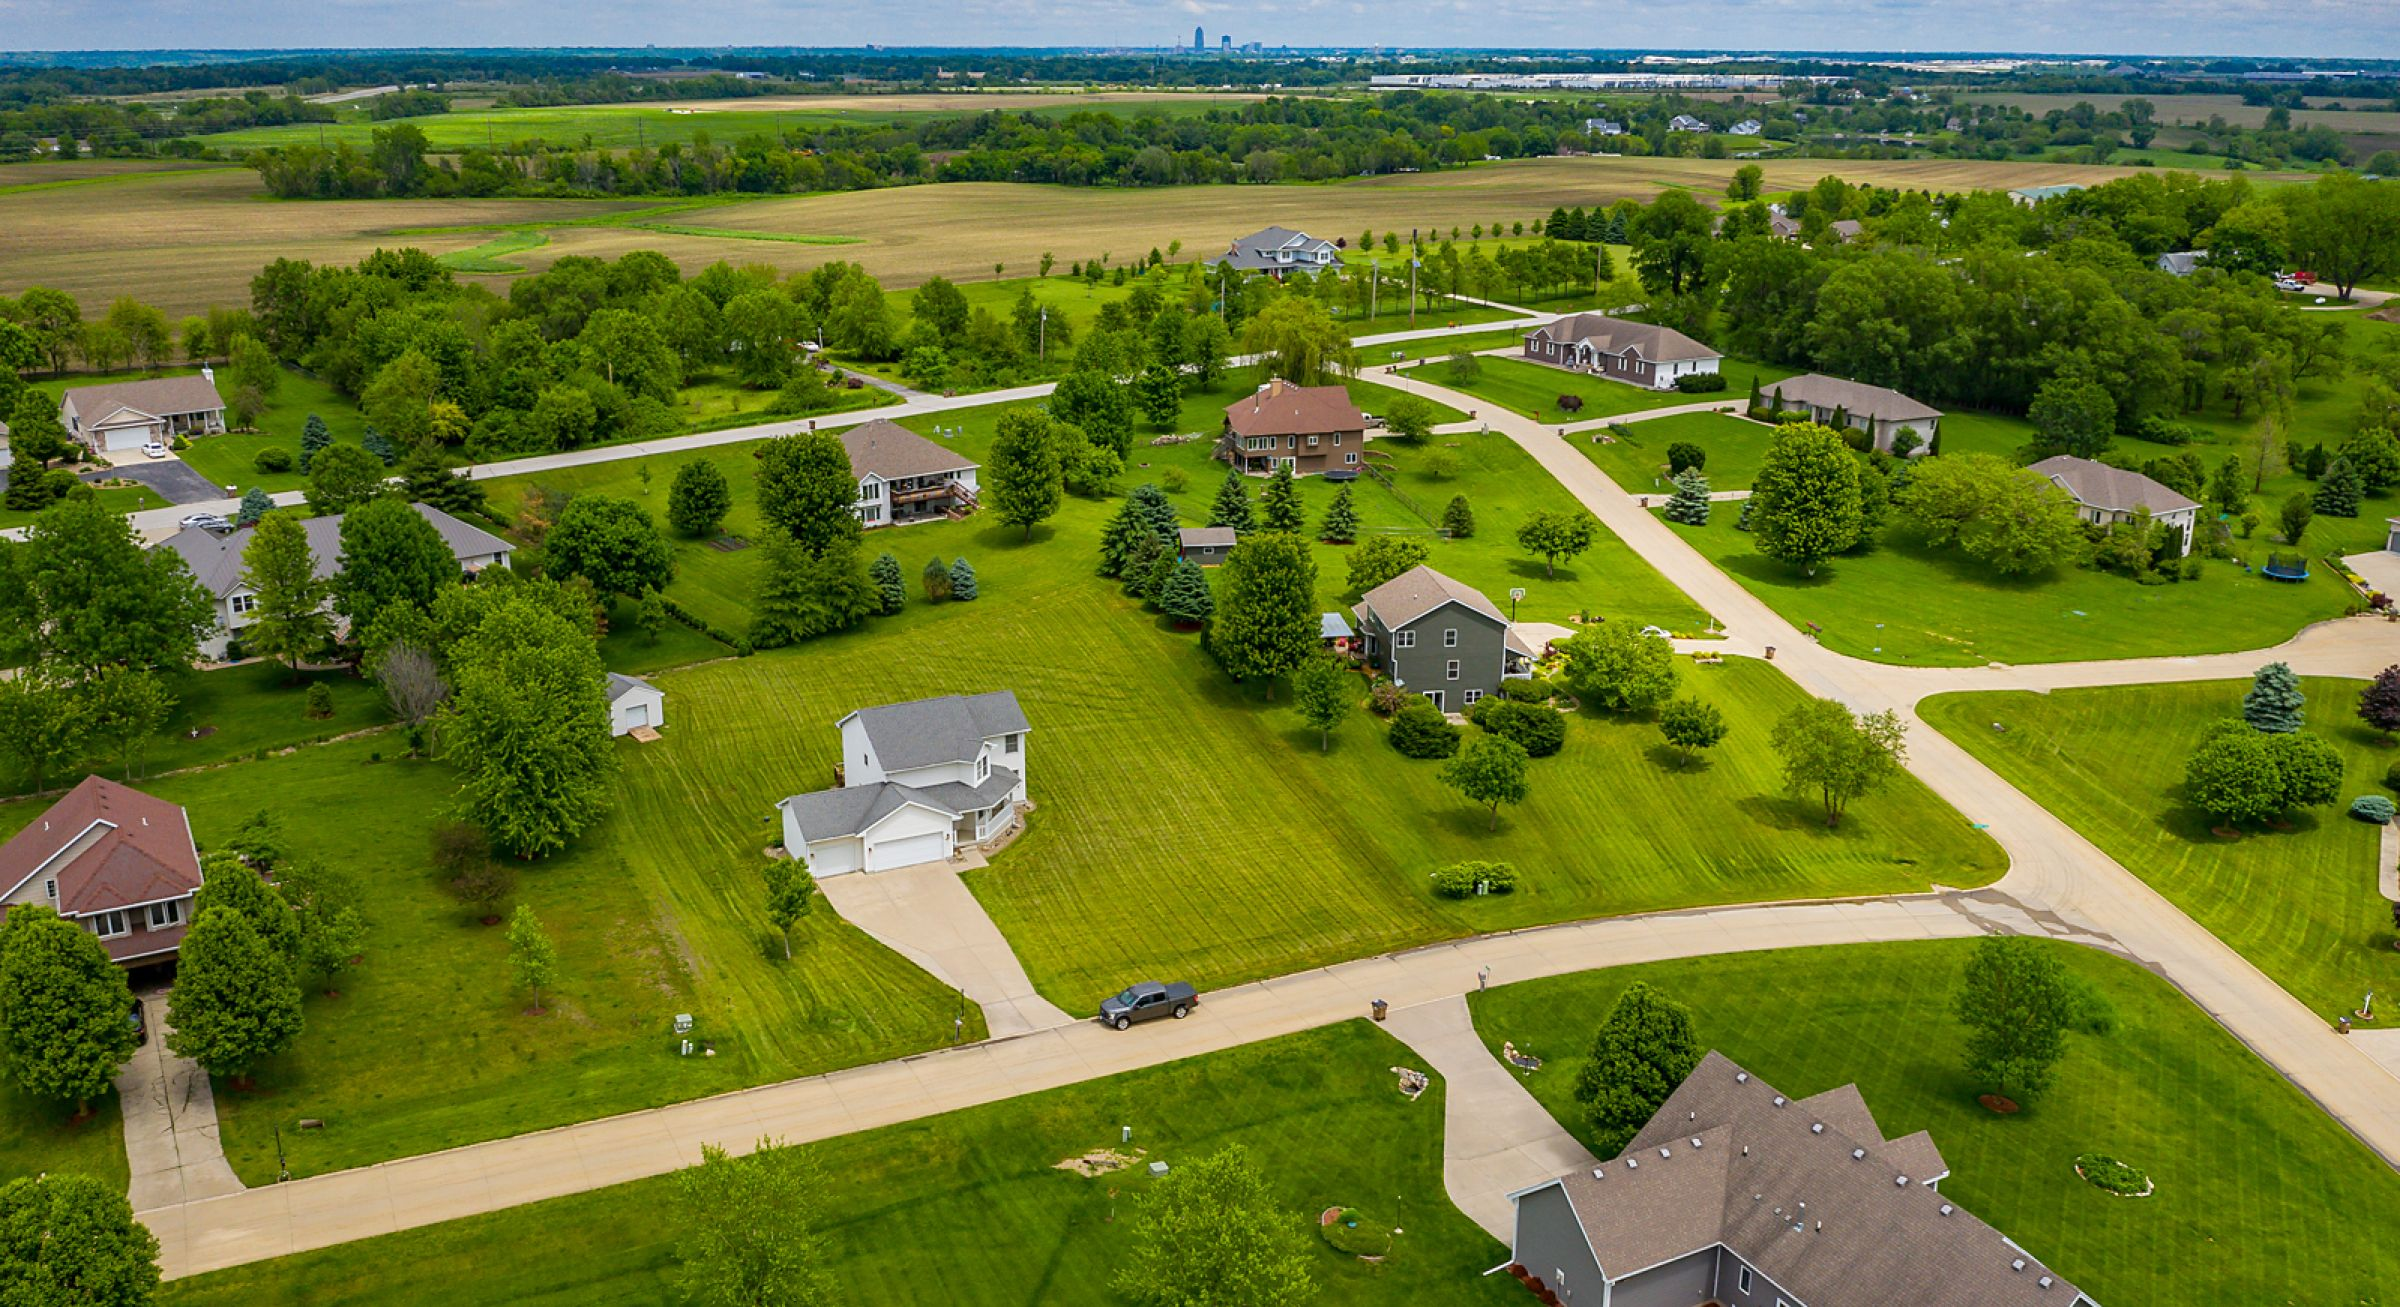 residential-warren-county-iowa-1-acres-listing-number-14999-0-2020-05-29-131828.jpg